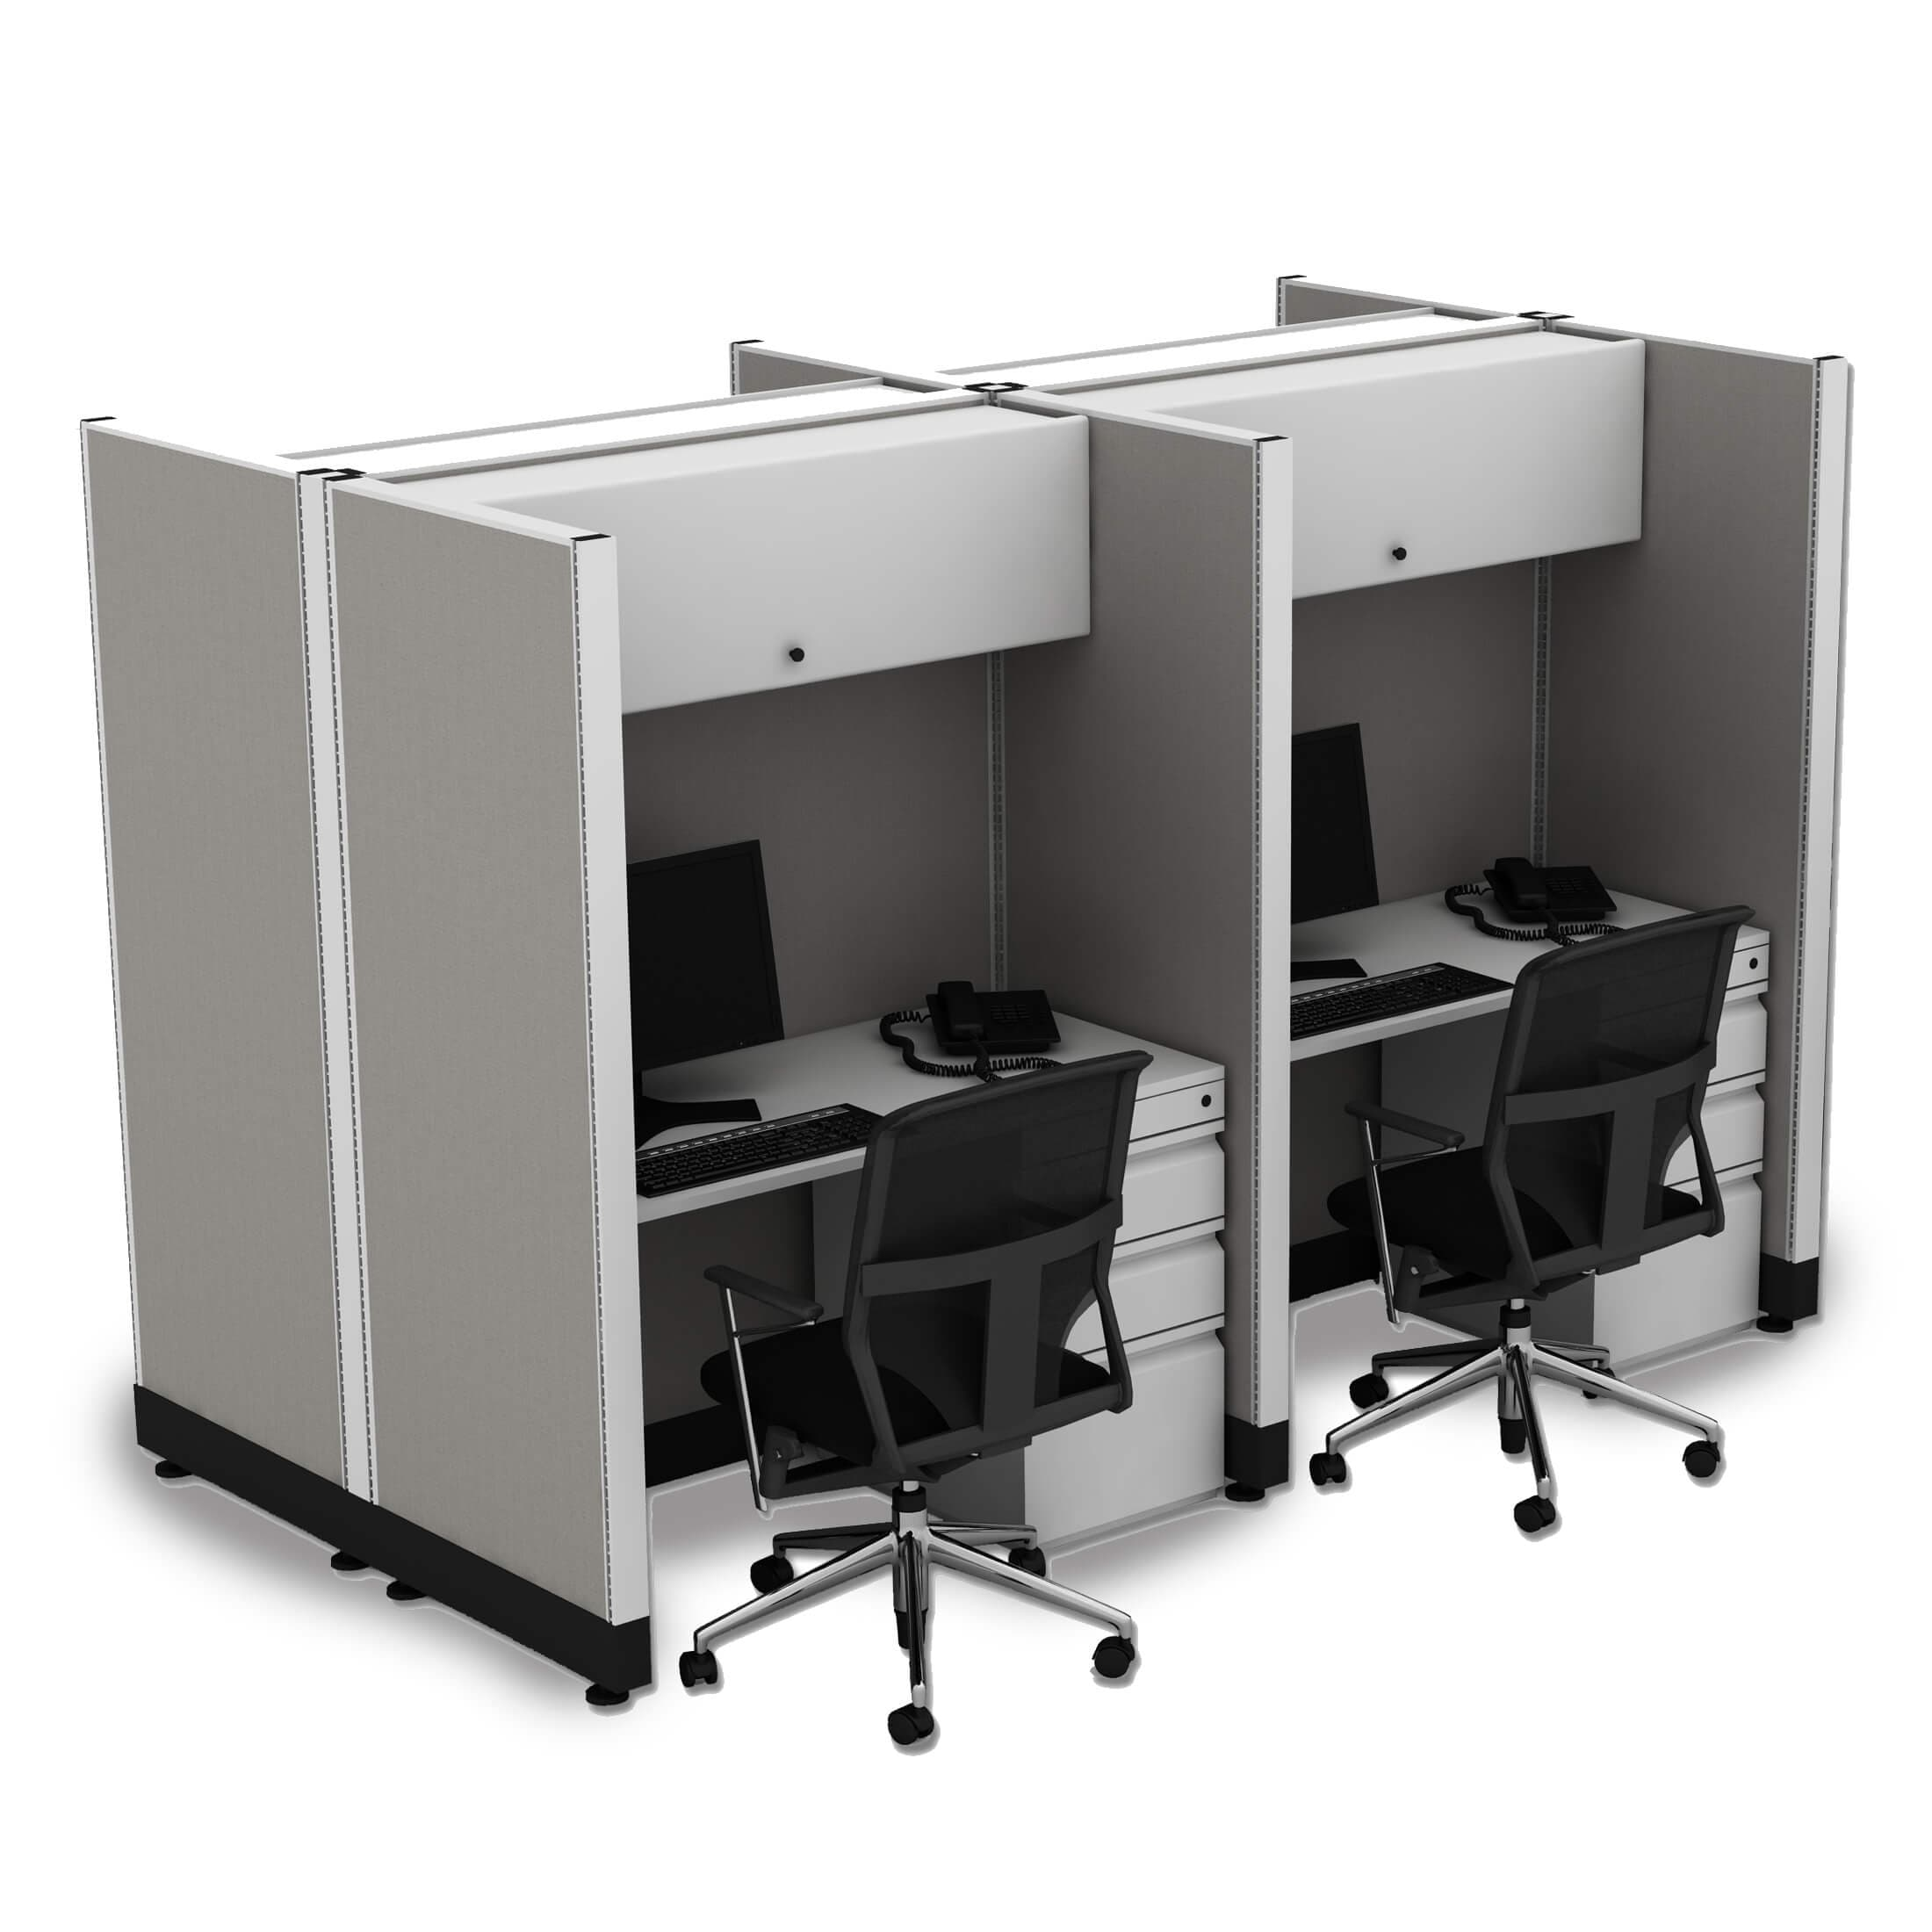 Tall Cubicles 67H 4pack Cluster Unpowered (3x4 - White Desk White Paint - Assembly Required)